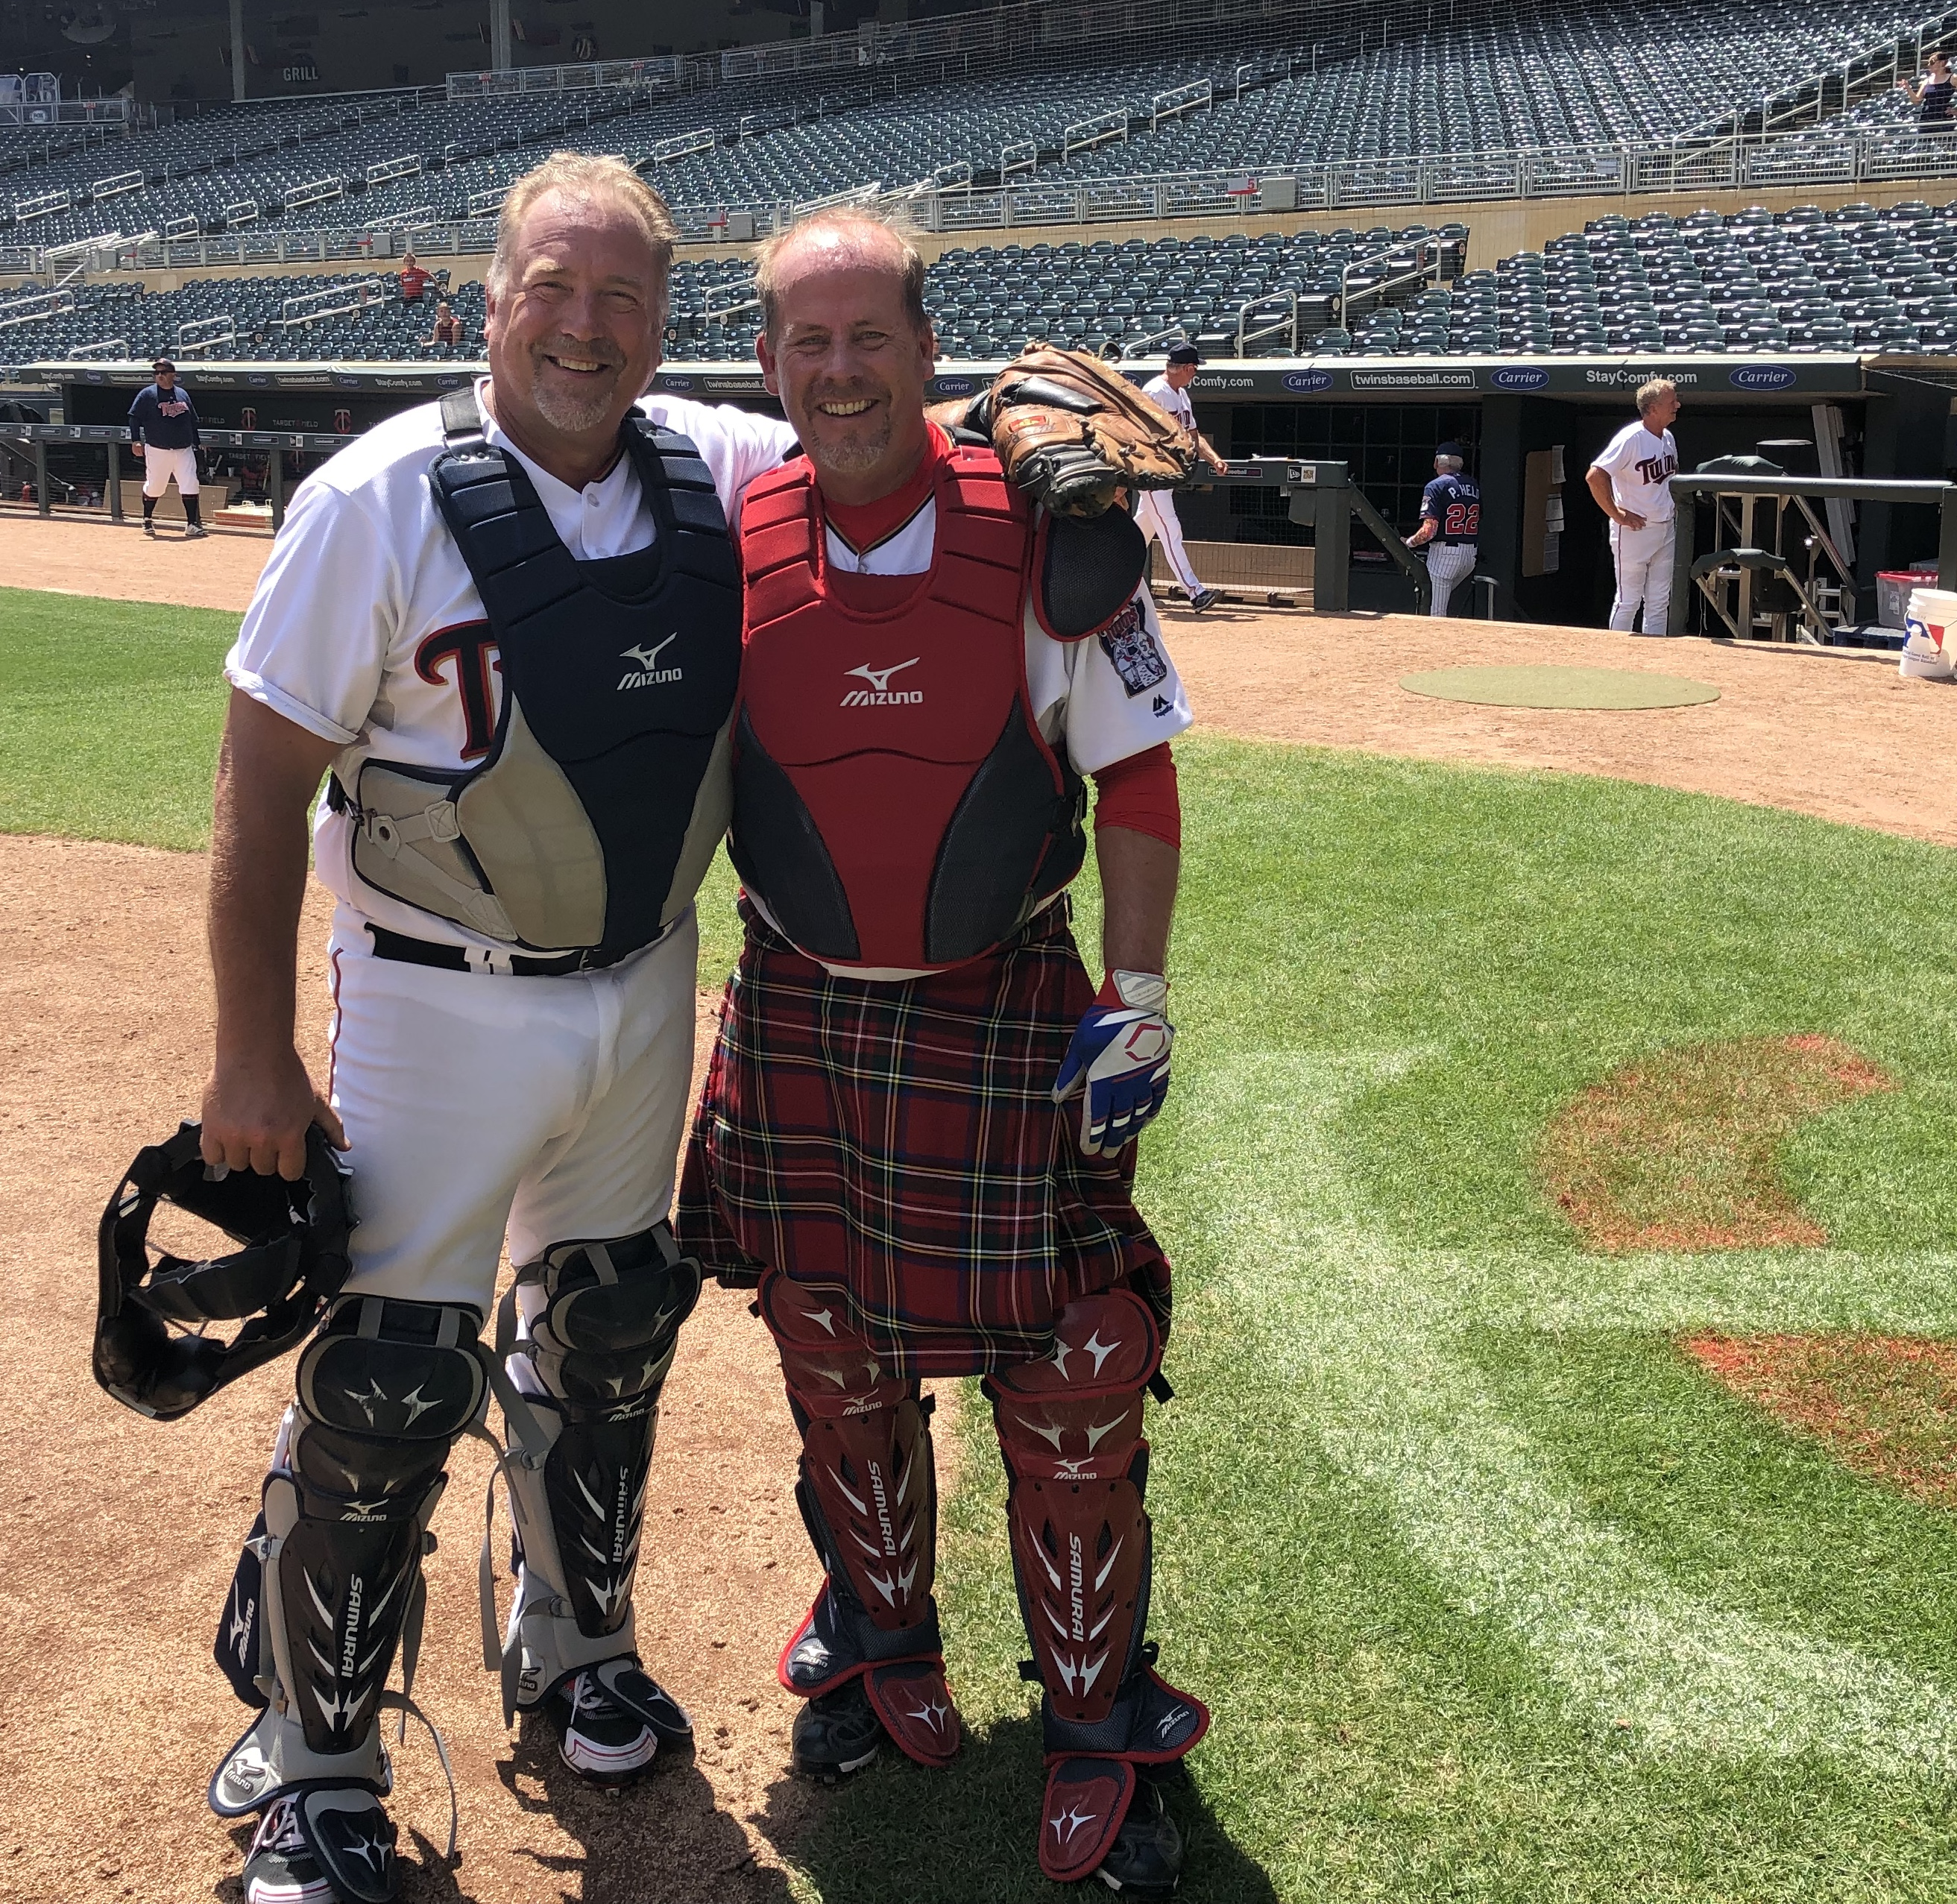 Todd wearing his Kilt while catching at Target Field!!